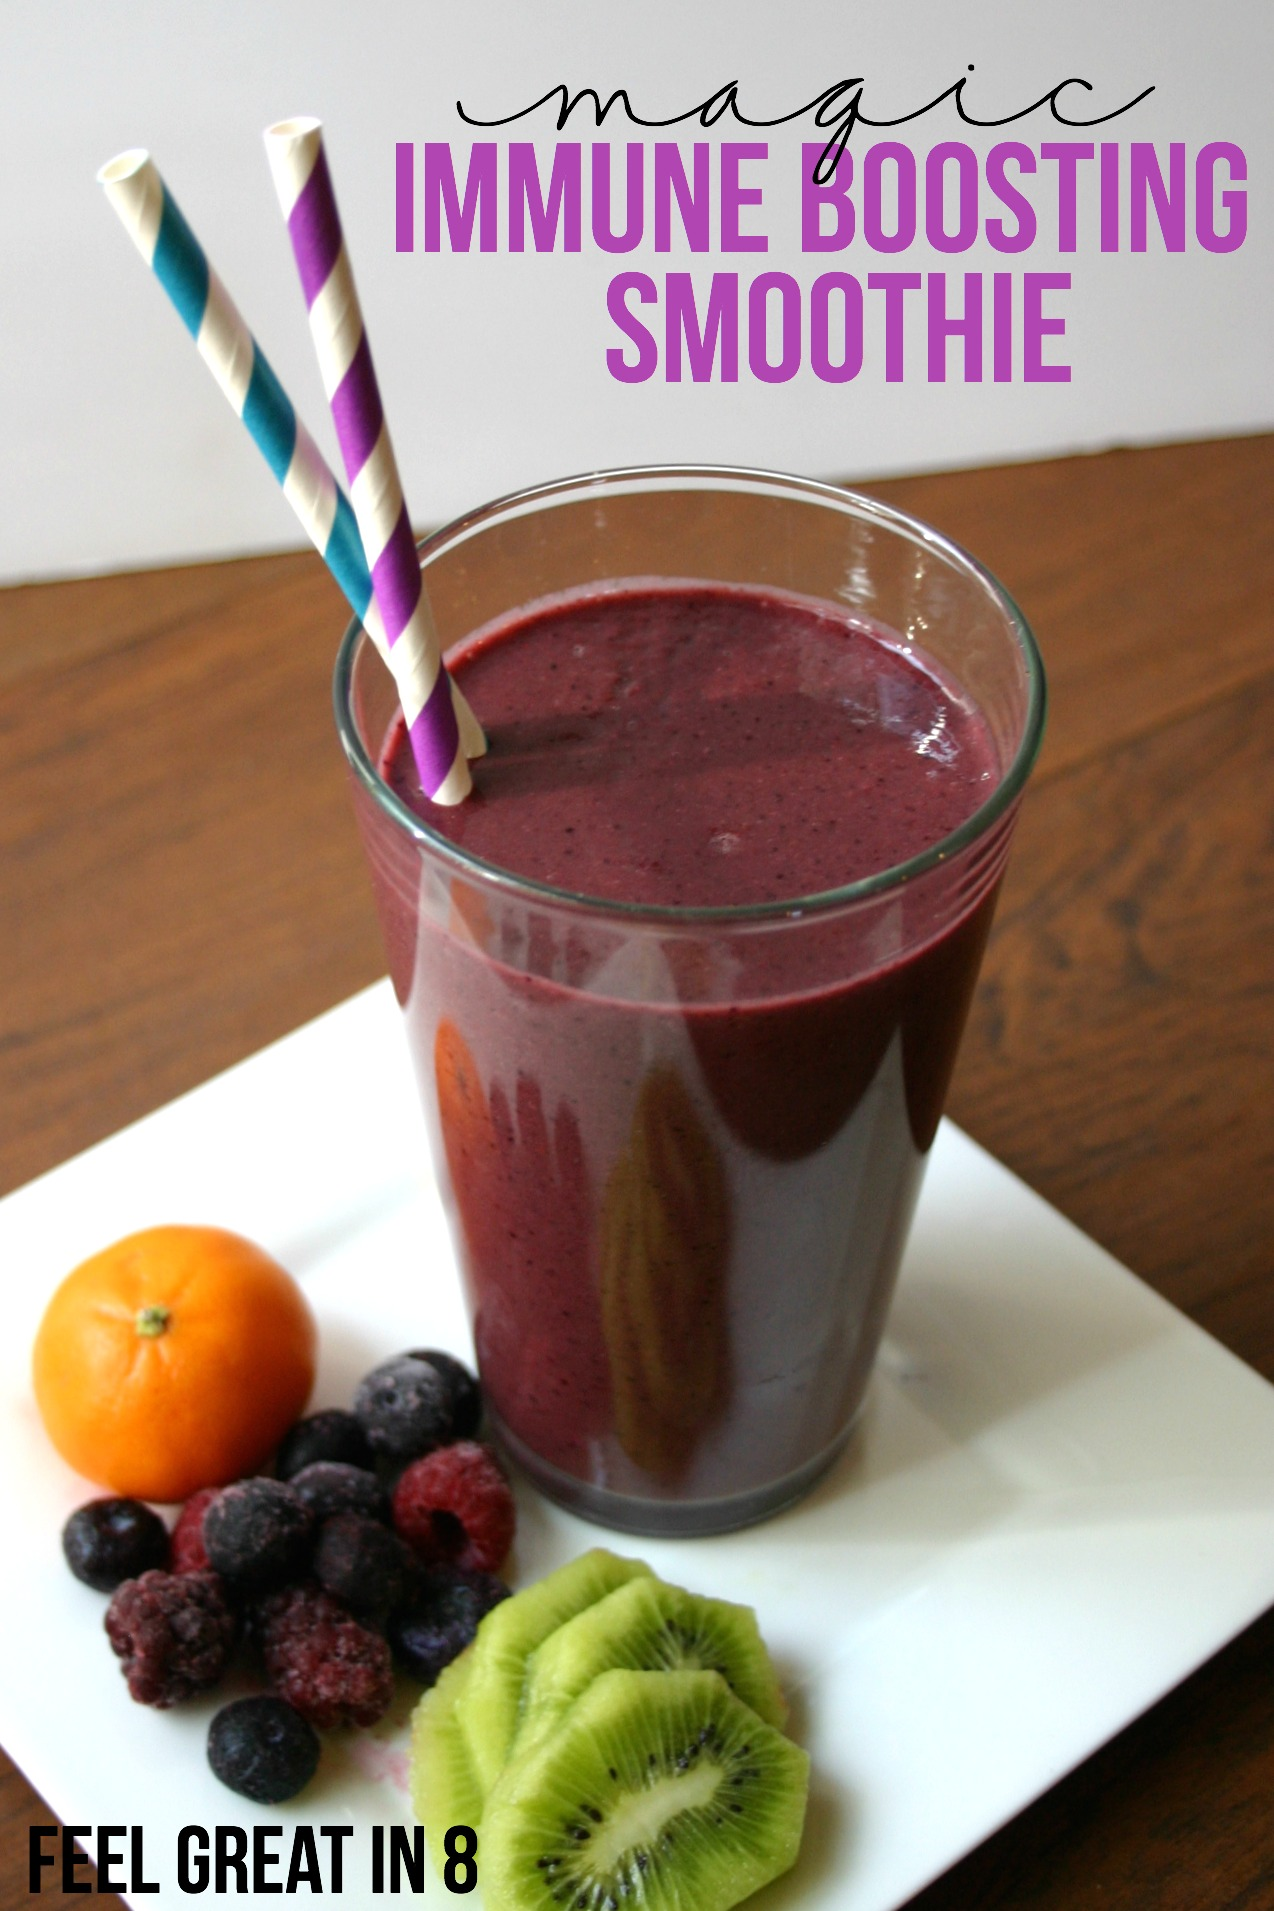 Magic Immune Boosting Smoothie | Feel Great in 8